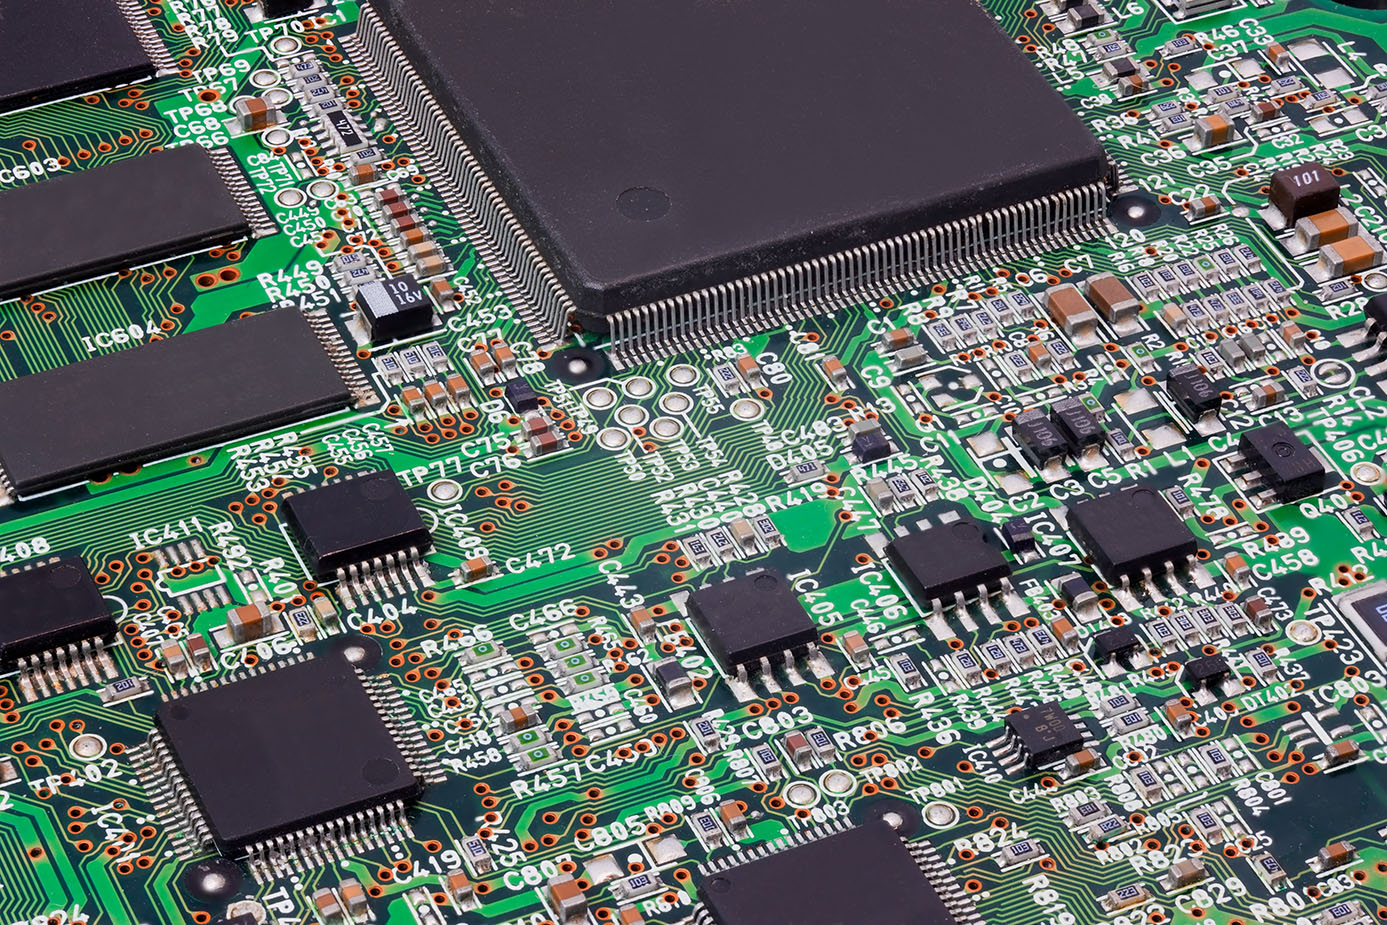 Printed Circuit Board Assembly Services Circuits By Us Inc Circuitboard Offers Expert Pcb With Complete Turnkey Capabilities For Customers Across A Range Of